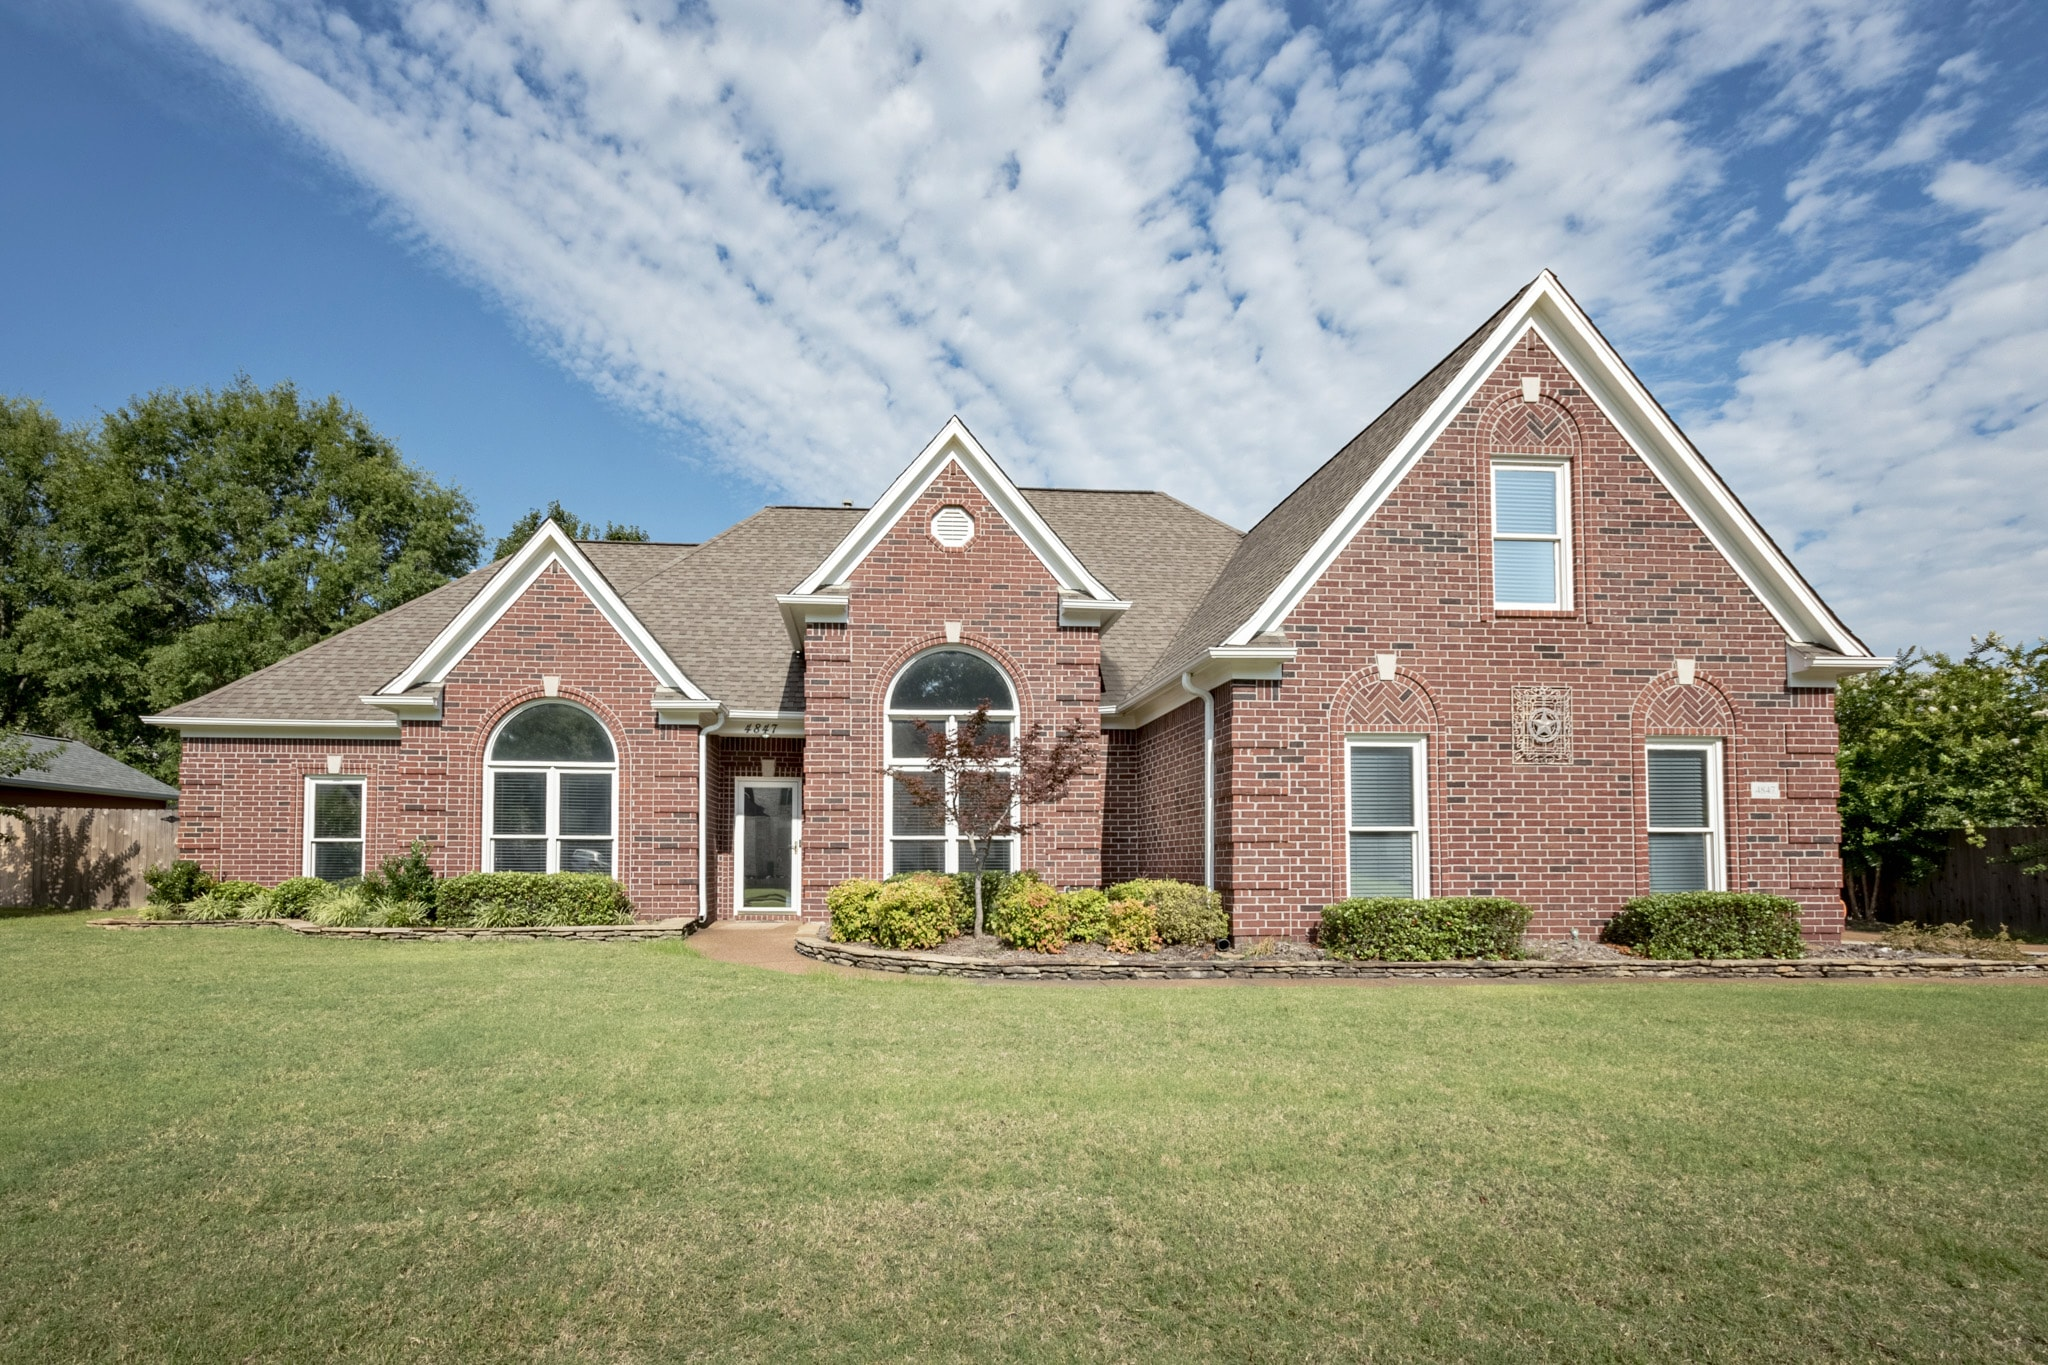 Latest homes for sale in Collierville